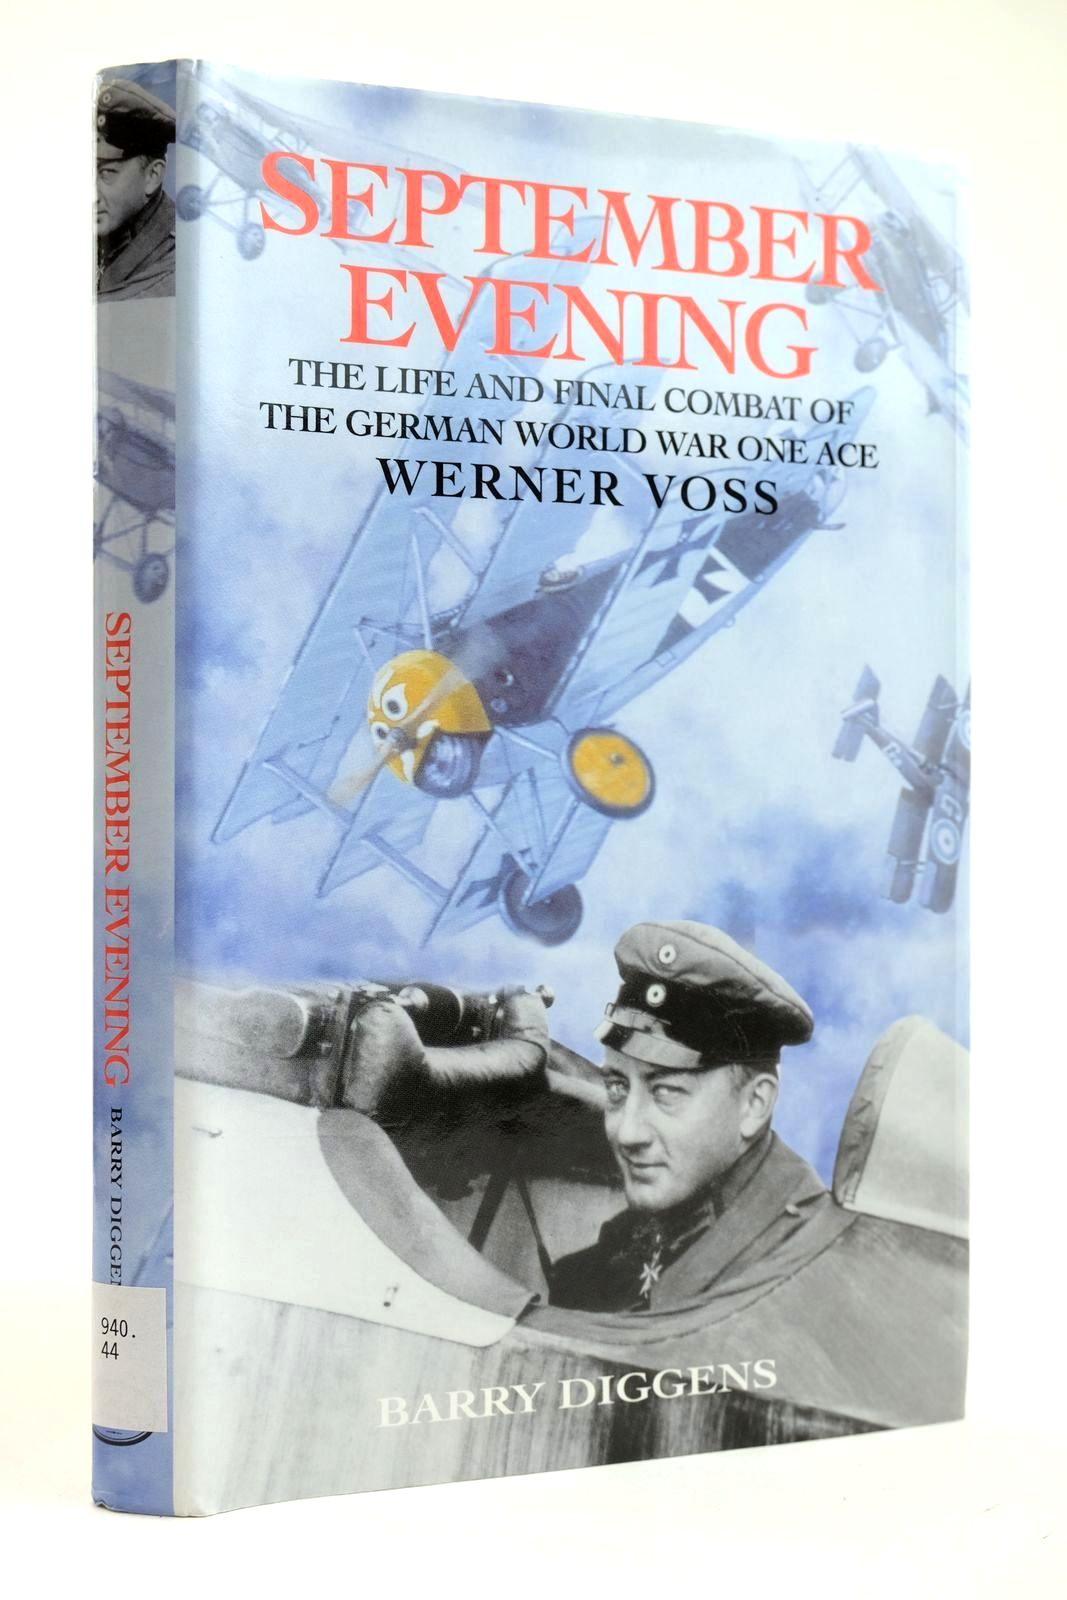 Photo of SEPTEMBER EVENING THE LIFE AND FINAL COMBAT OF THE GERMAN WORLD WAR ONE ACE WERNER VOSS written by Diggens, Barry published by Grub Street (STOCK CODE: 2132182)  for sale by Stella & Rose's Books